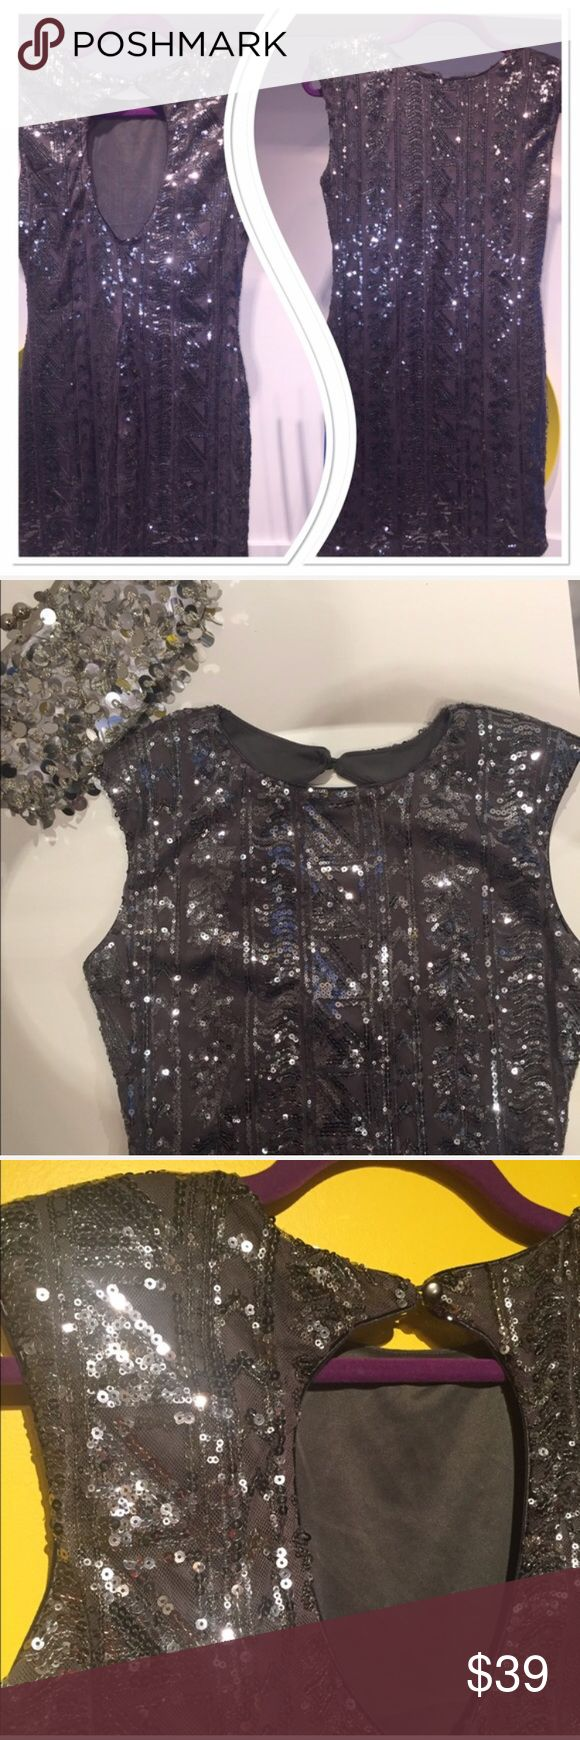 "Boutique New Years Sequined silver bodycon dress Sexy Sequined silver bodycon short dress. Comes from New York boutique silver - gray sequins, sexy opening on the back, dress is fully lined. Size Small. Length - 32,5"" pit to pit 16"". Light padding on the shoulders to keep the shape. Beautiful material, has some stretch to it, but hugs your body and compliments all the curvesCondition- very good, worn once. Celebrate your special occasion -in this dress and you are going to sparkle…"